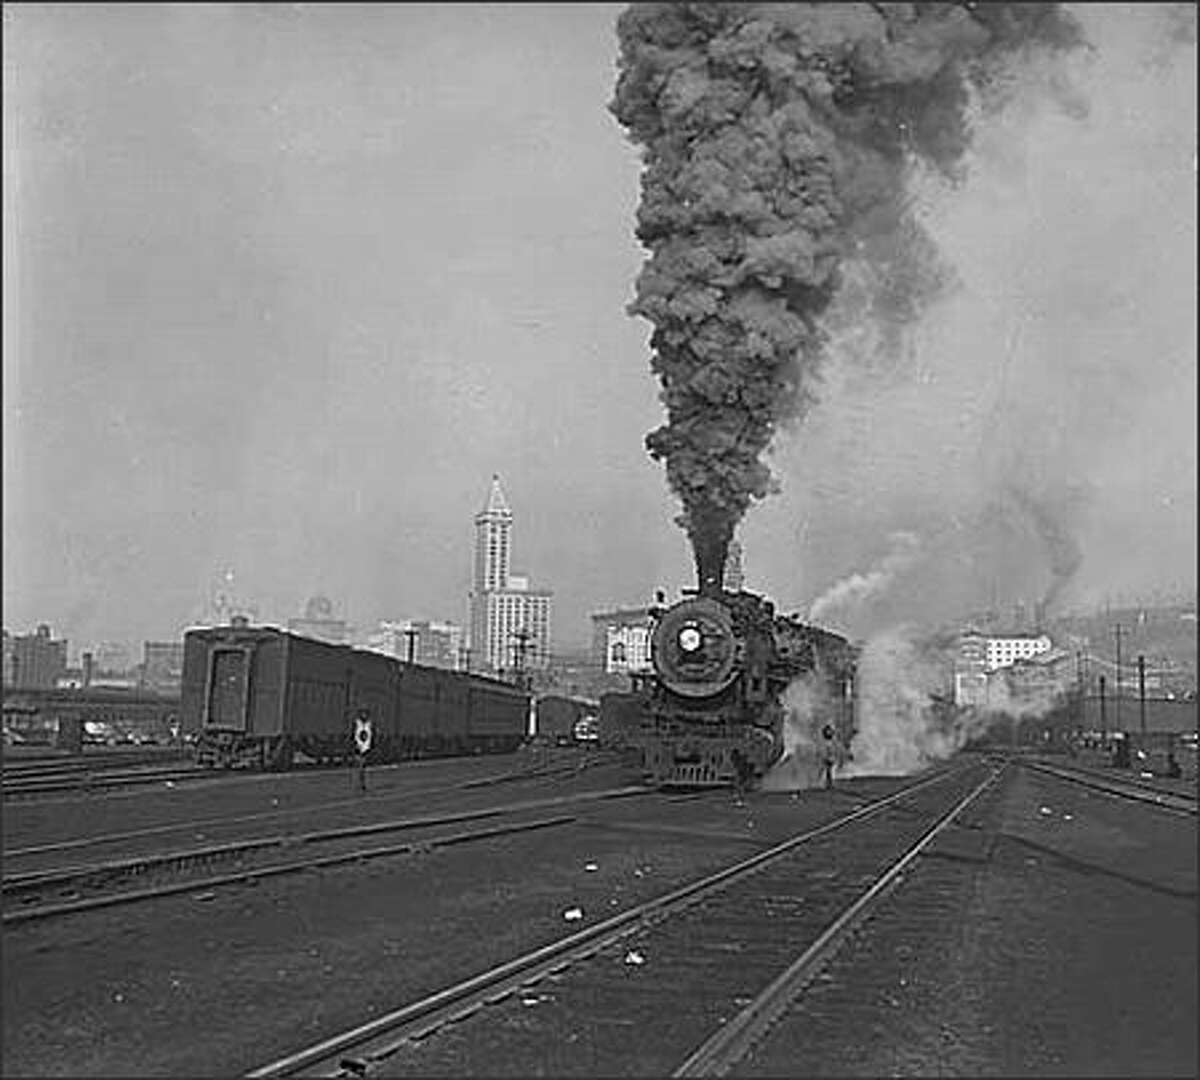 Huge railroad yards were located at large railway stations throughout the country. Here, the trains loaded and unloaded freight and passengers. They also exchanged railcars and switched tracks for the outgoing journey. This photo, taken in 1945, shows the Seattle railroad yards south of King Street Station. A steam locomotive is coming down the track, and the Smith Tower is visible in the distance. (Seattle Post-Intelligencer Collection, Museum of History & Industry PI25230)